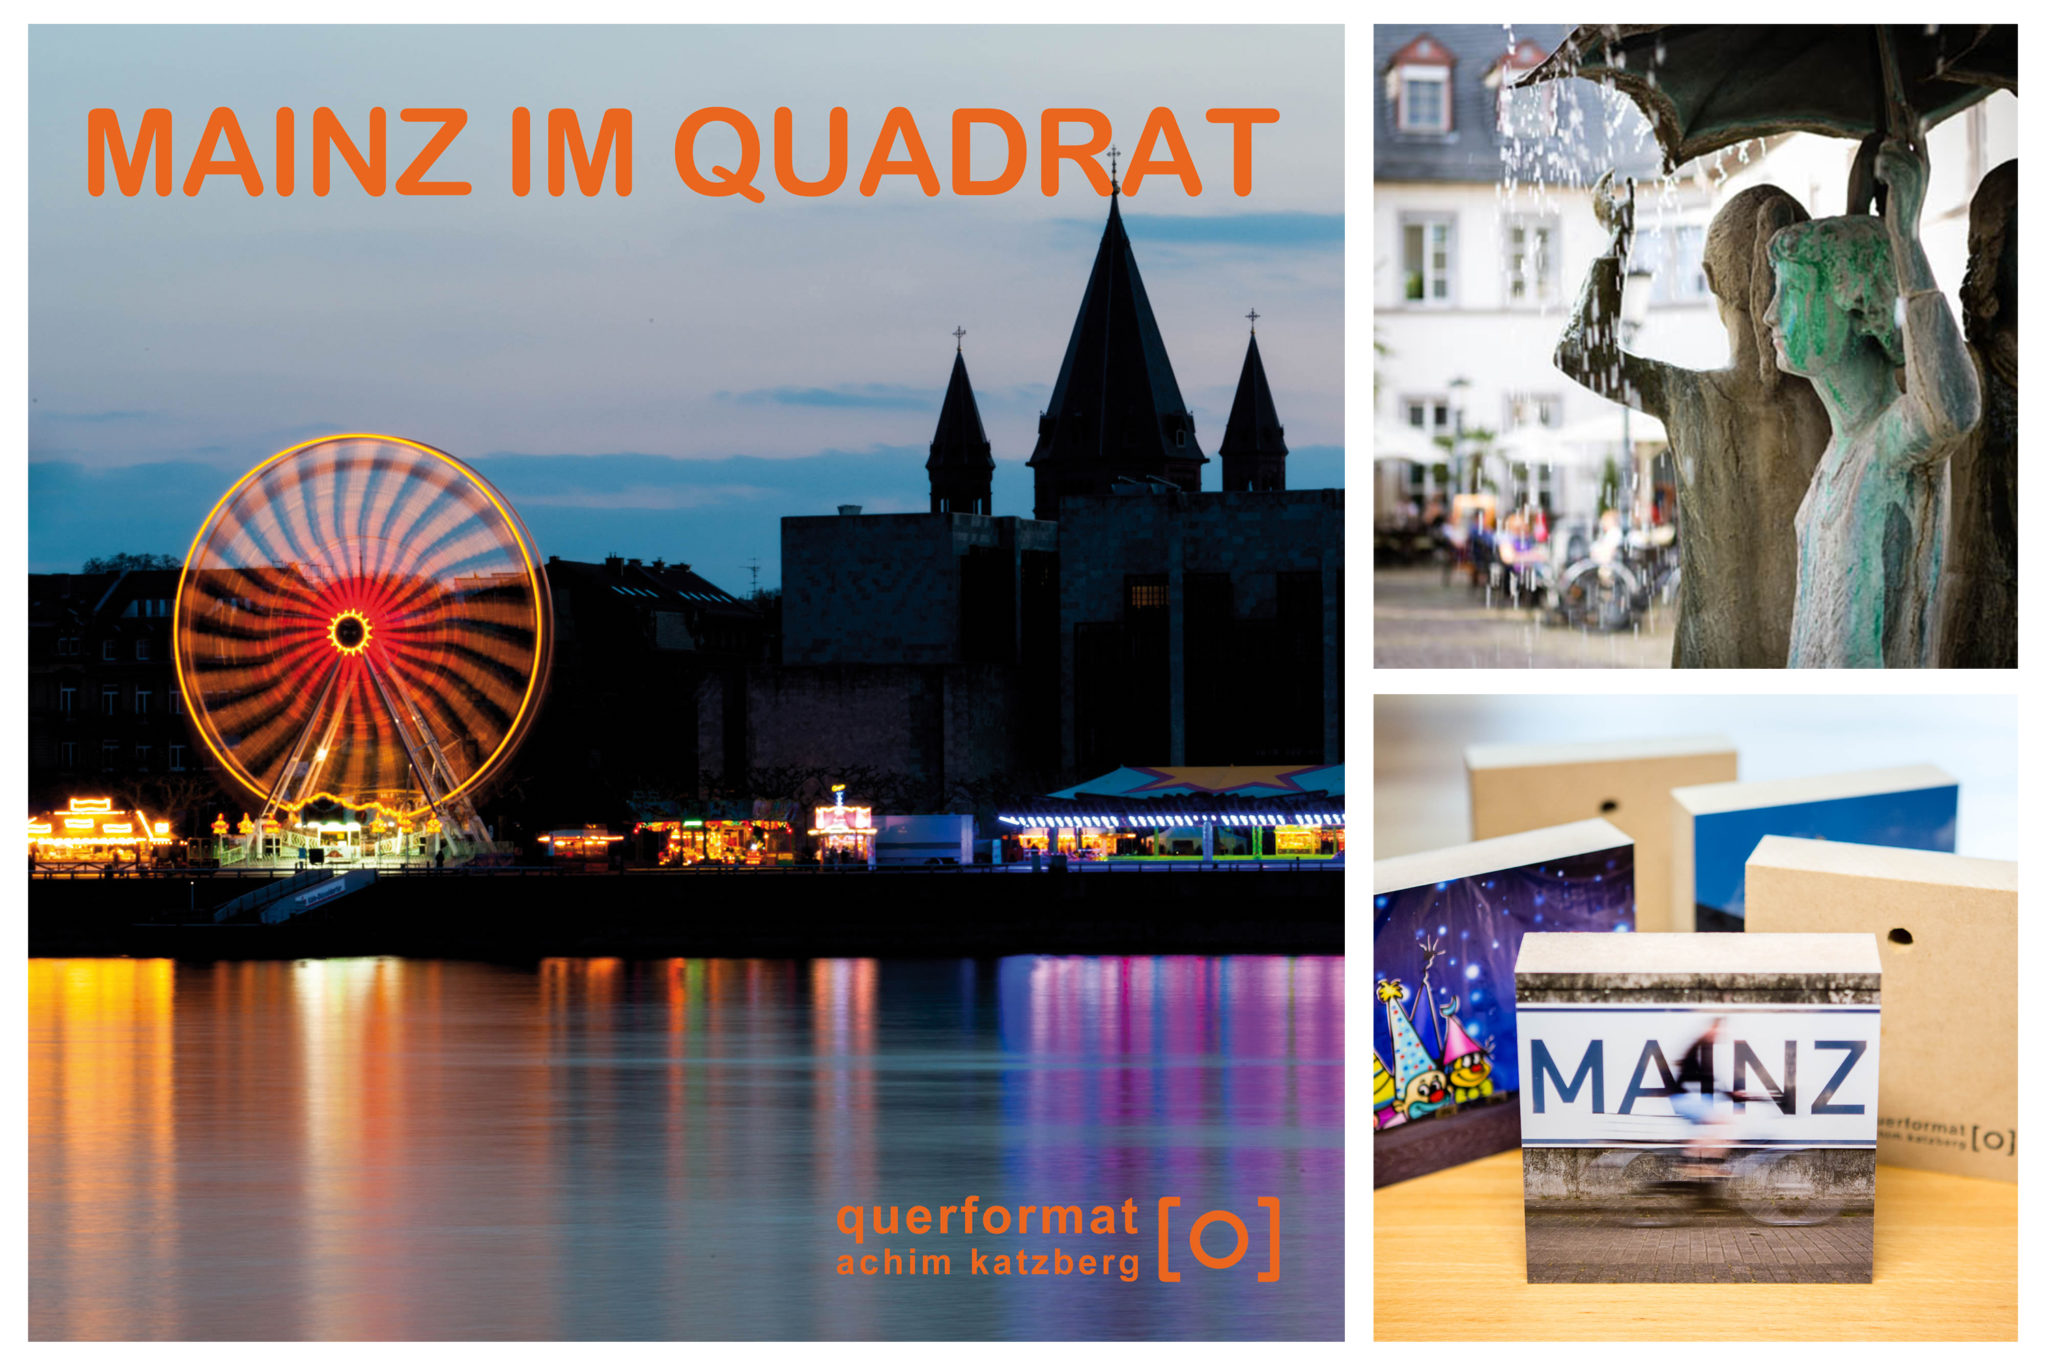 querformat-fotografie - Achim Katzberg - Collage_Mainz_im_Quadrat_2020